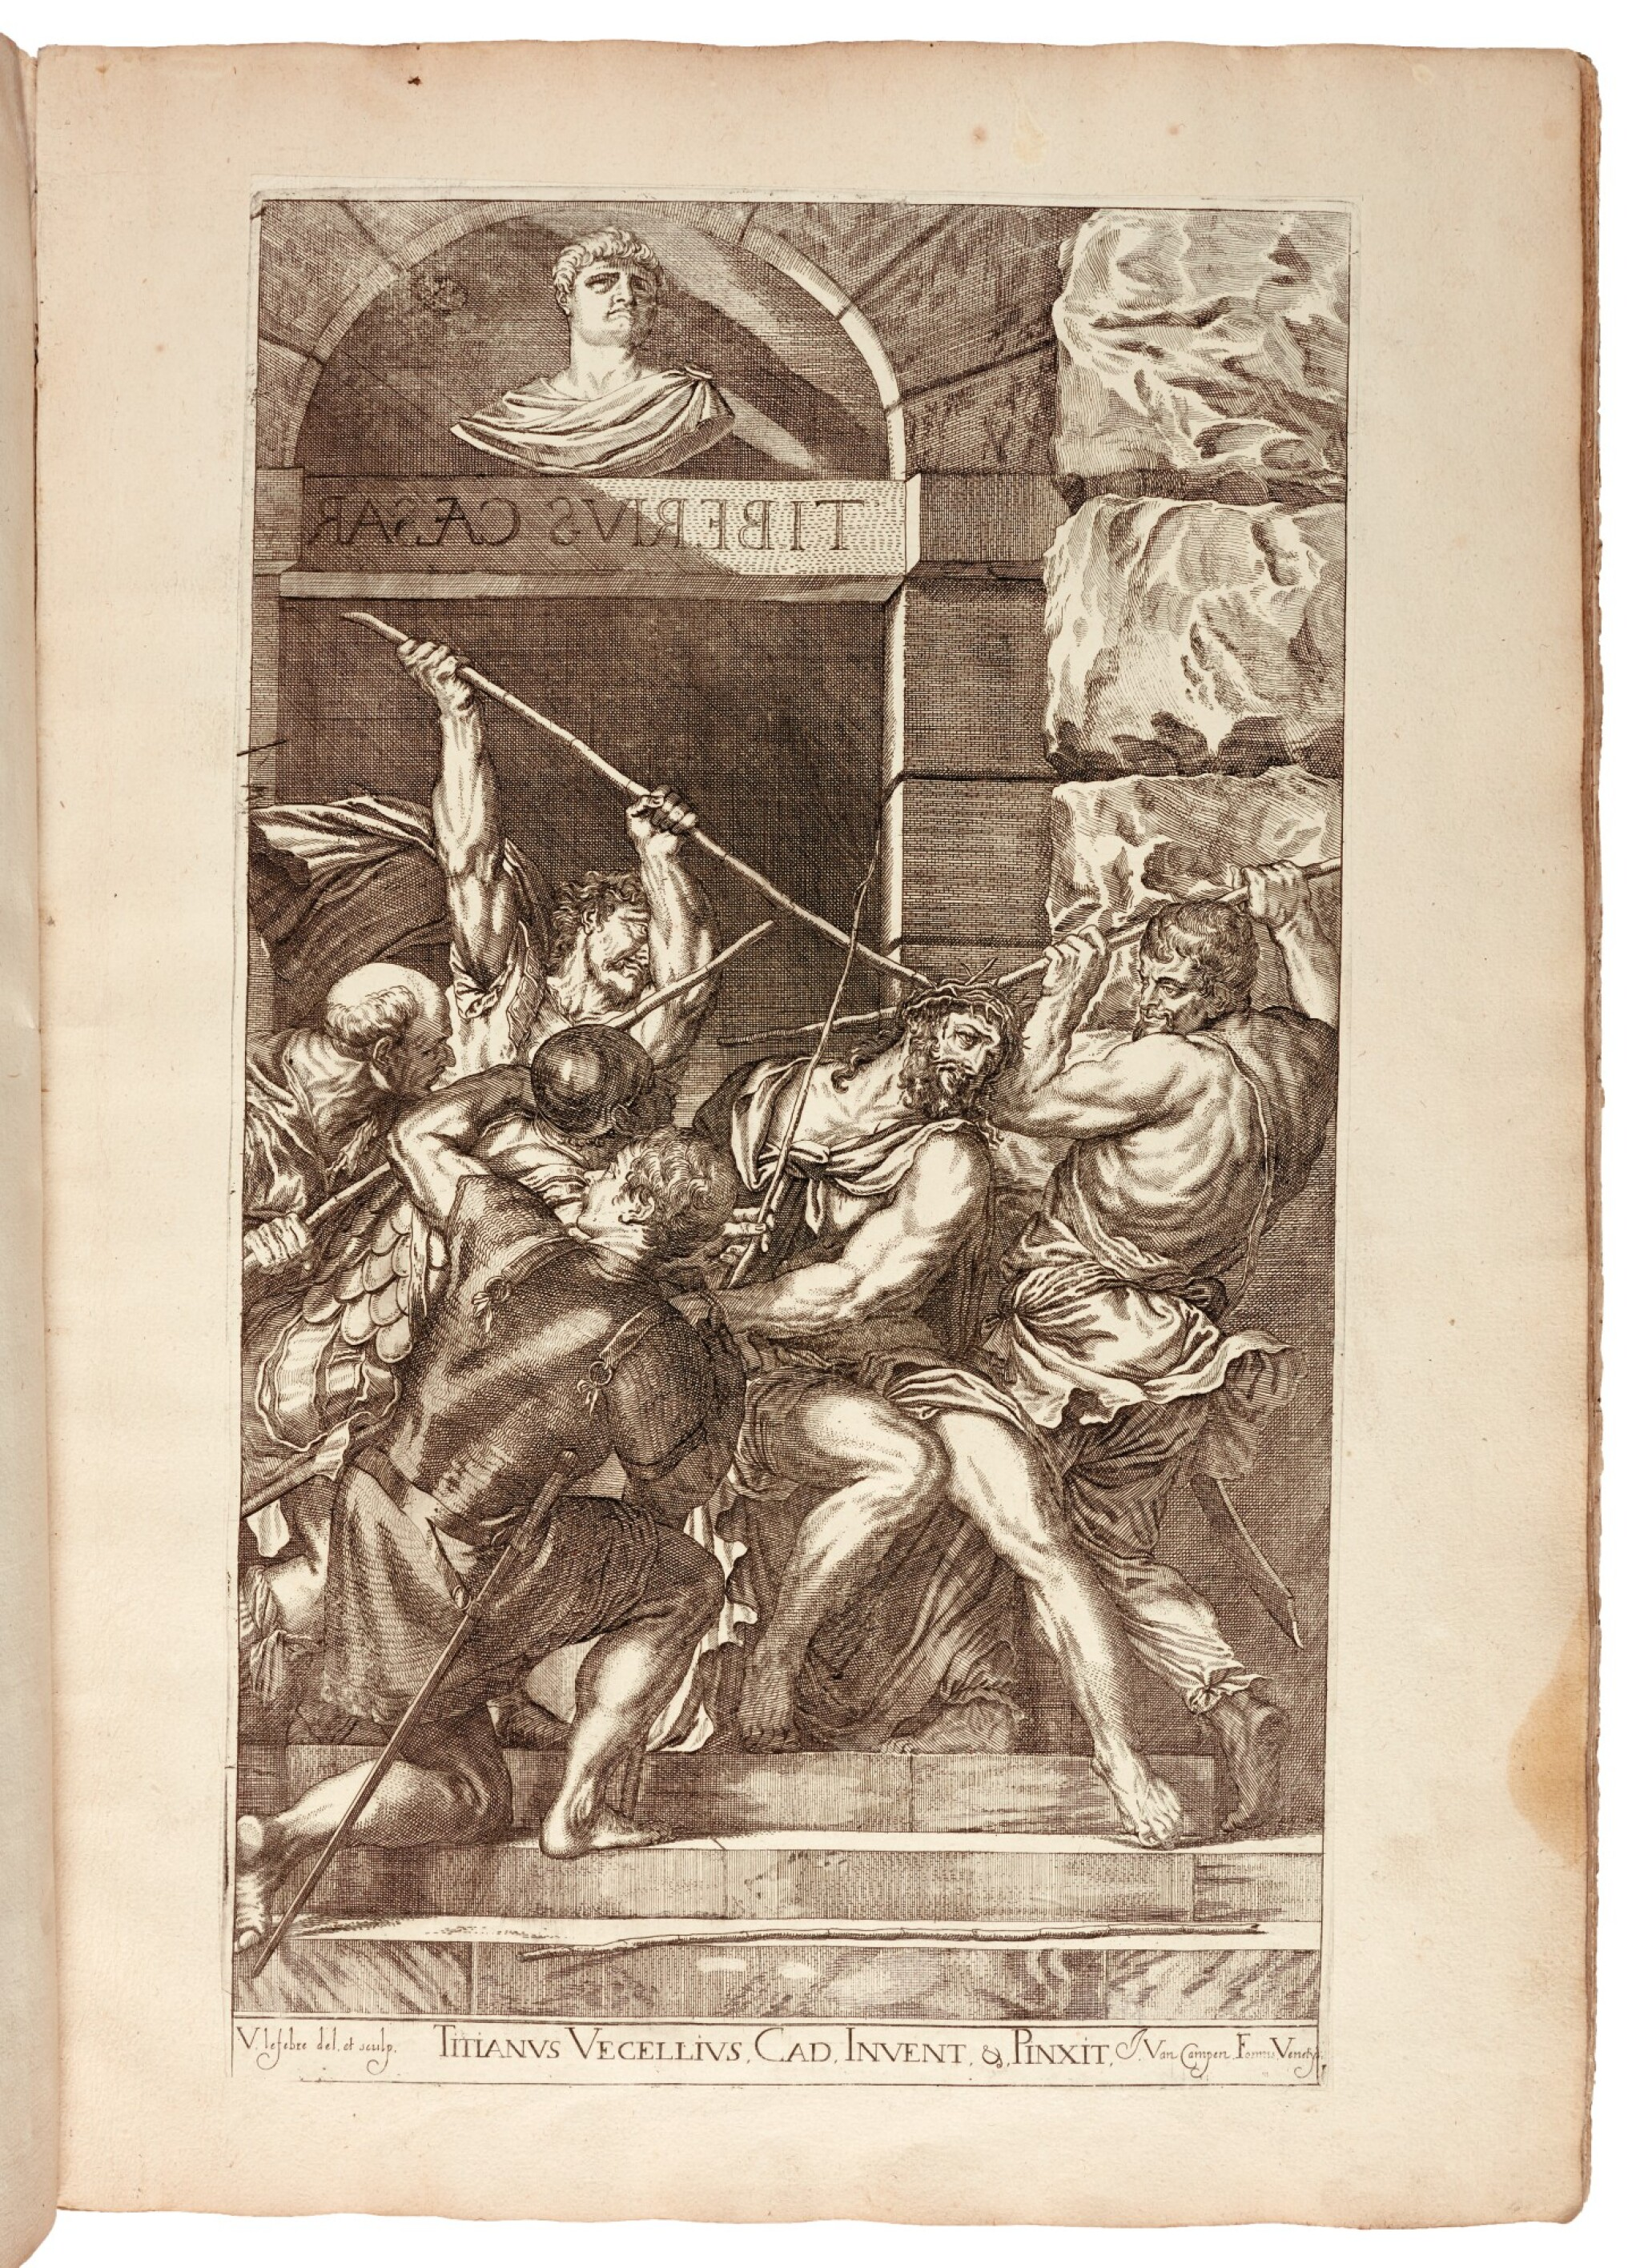 View full screen - View 1 of Lot 267. Titian and Paolo Veronese, Opera selectiora... [Venice], 1682, contemporary vellum.